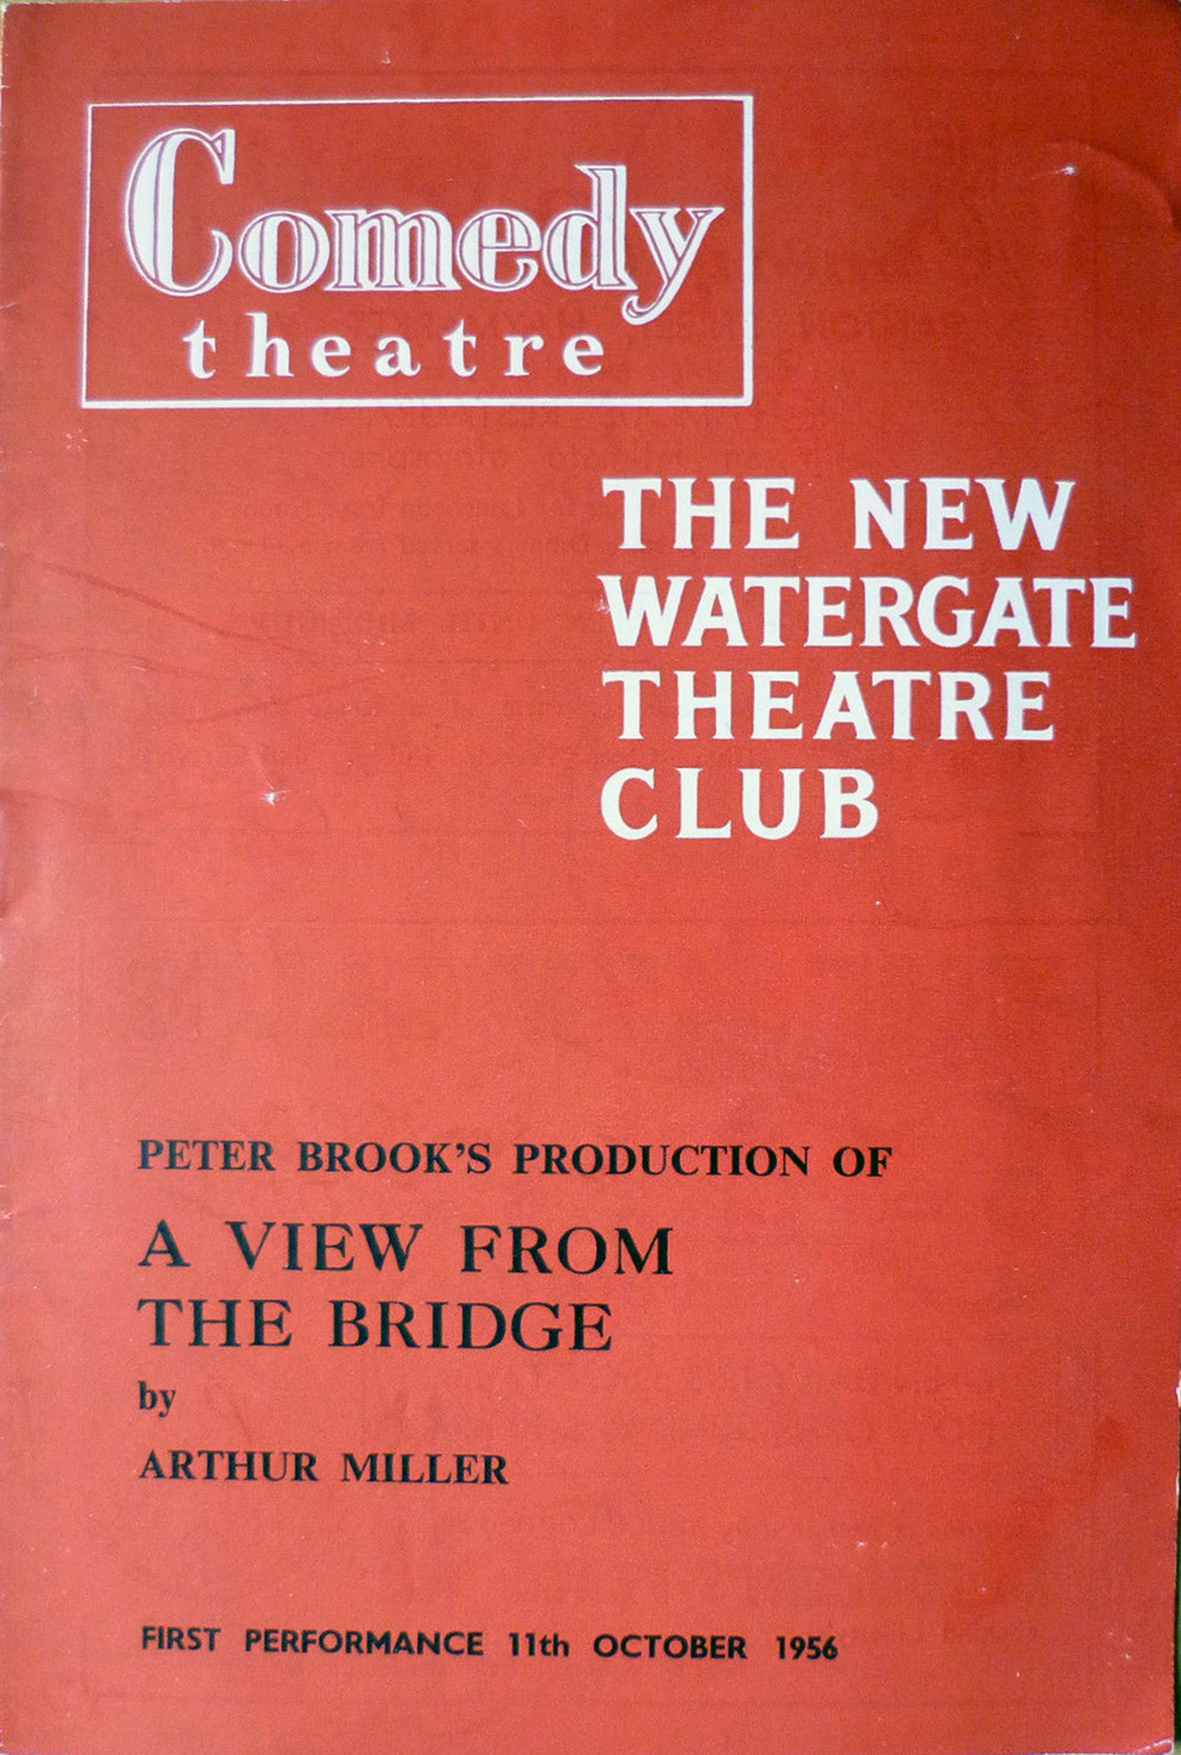 the rise and fall of colin wilson and the night he met marilyn programme for a view from a bridge at the comedy theatre the new watergate theatre